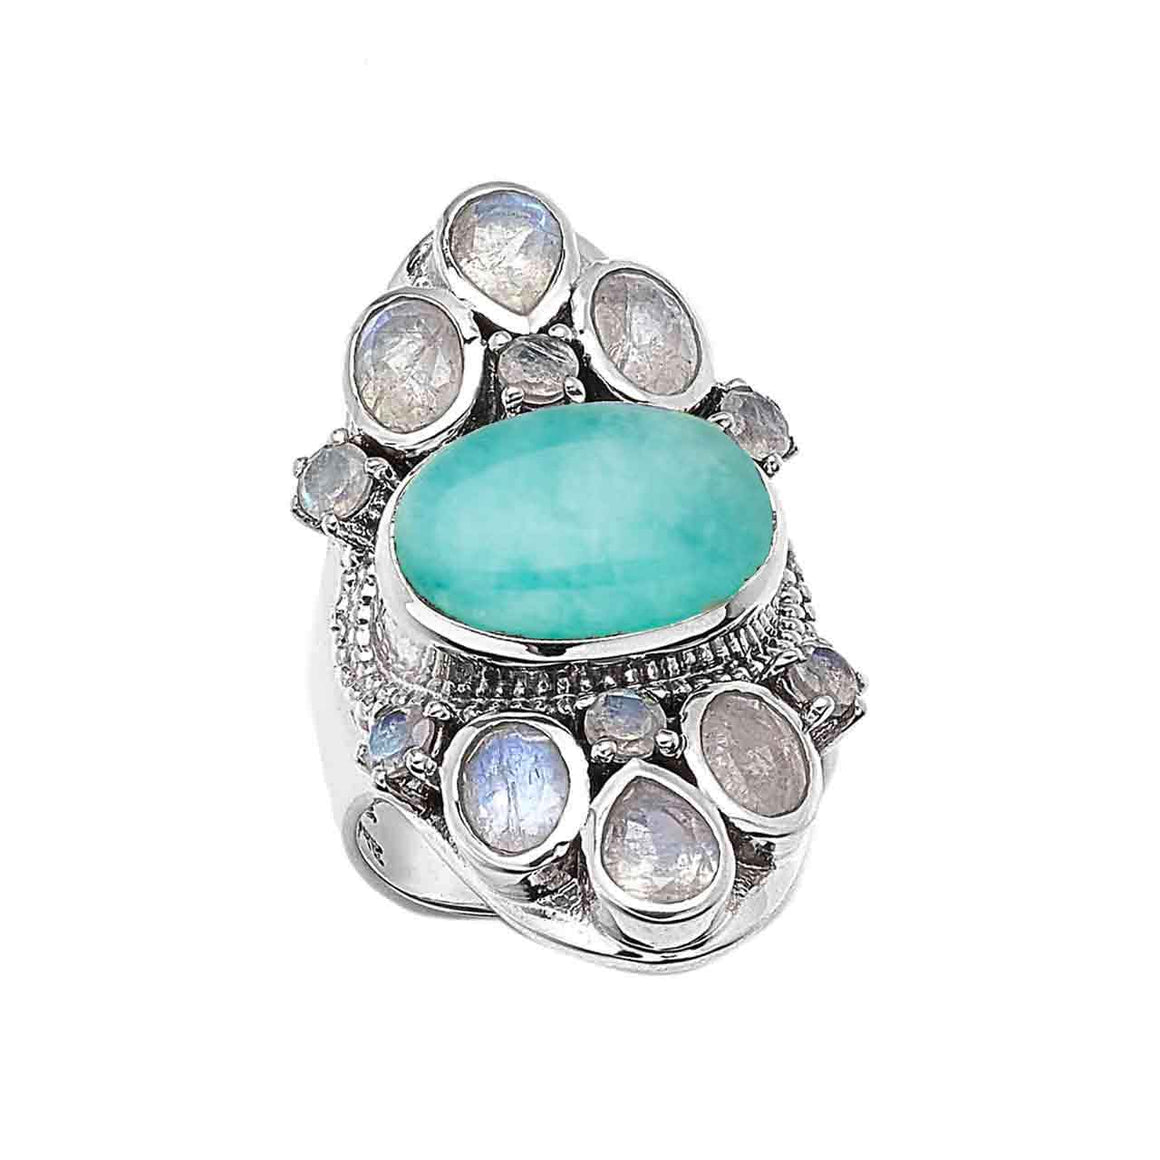 Amazonite and Faceted Rainbow Moonstone Gemstone Ring